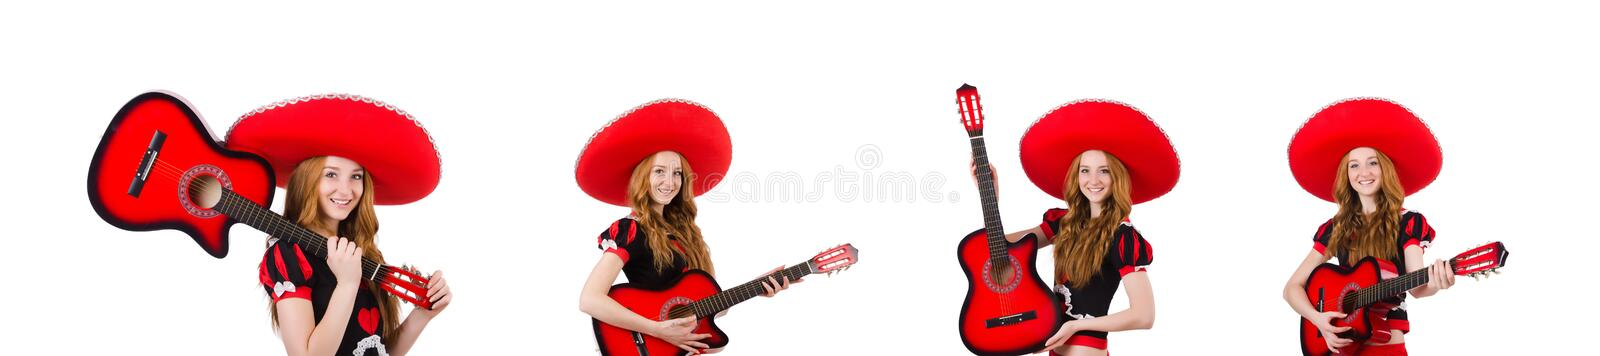 Woman guitar player with sombrero on white stock photography